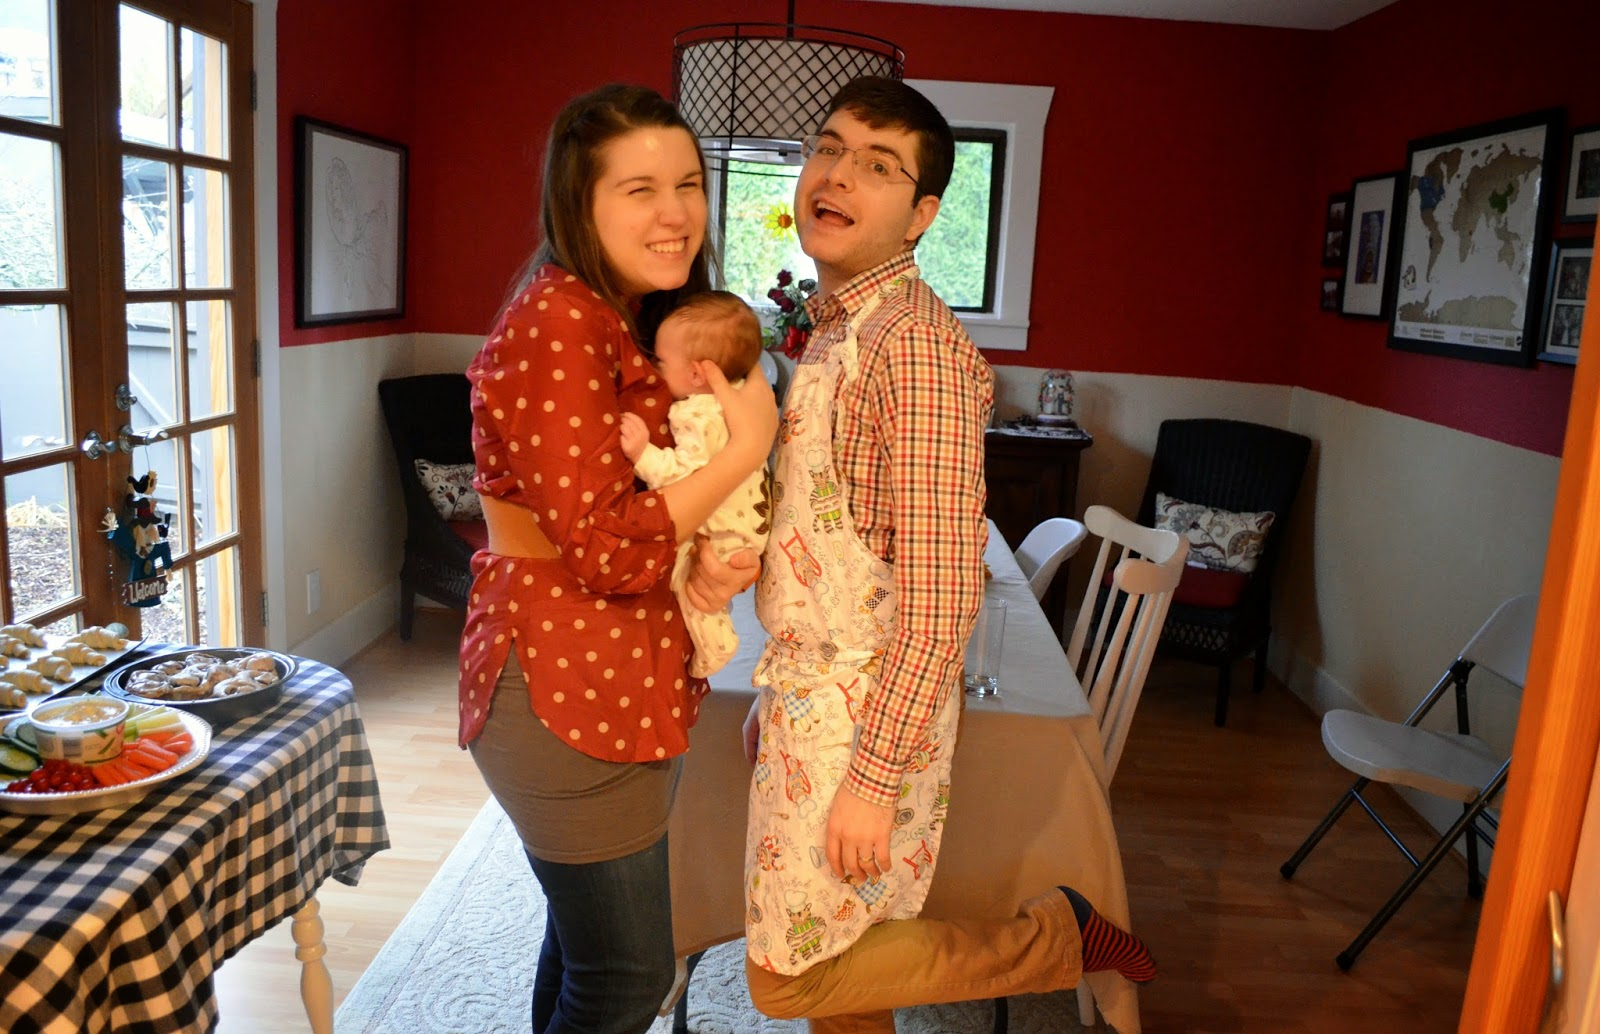 new parents with their new baby at thanksgiving